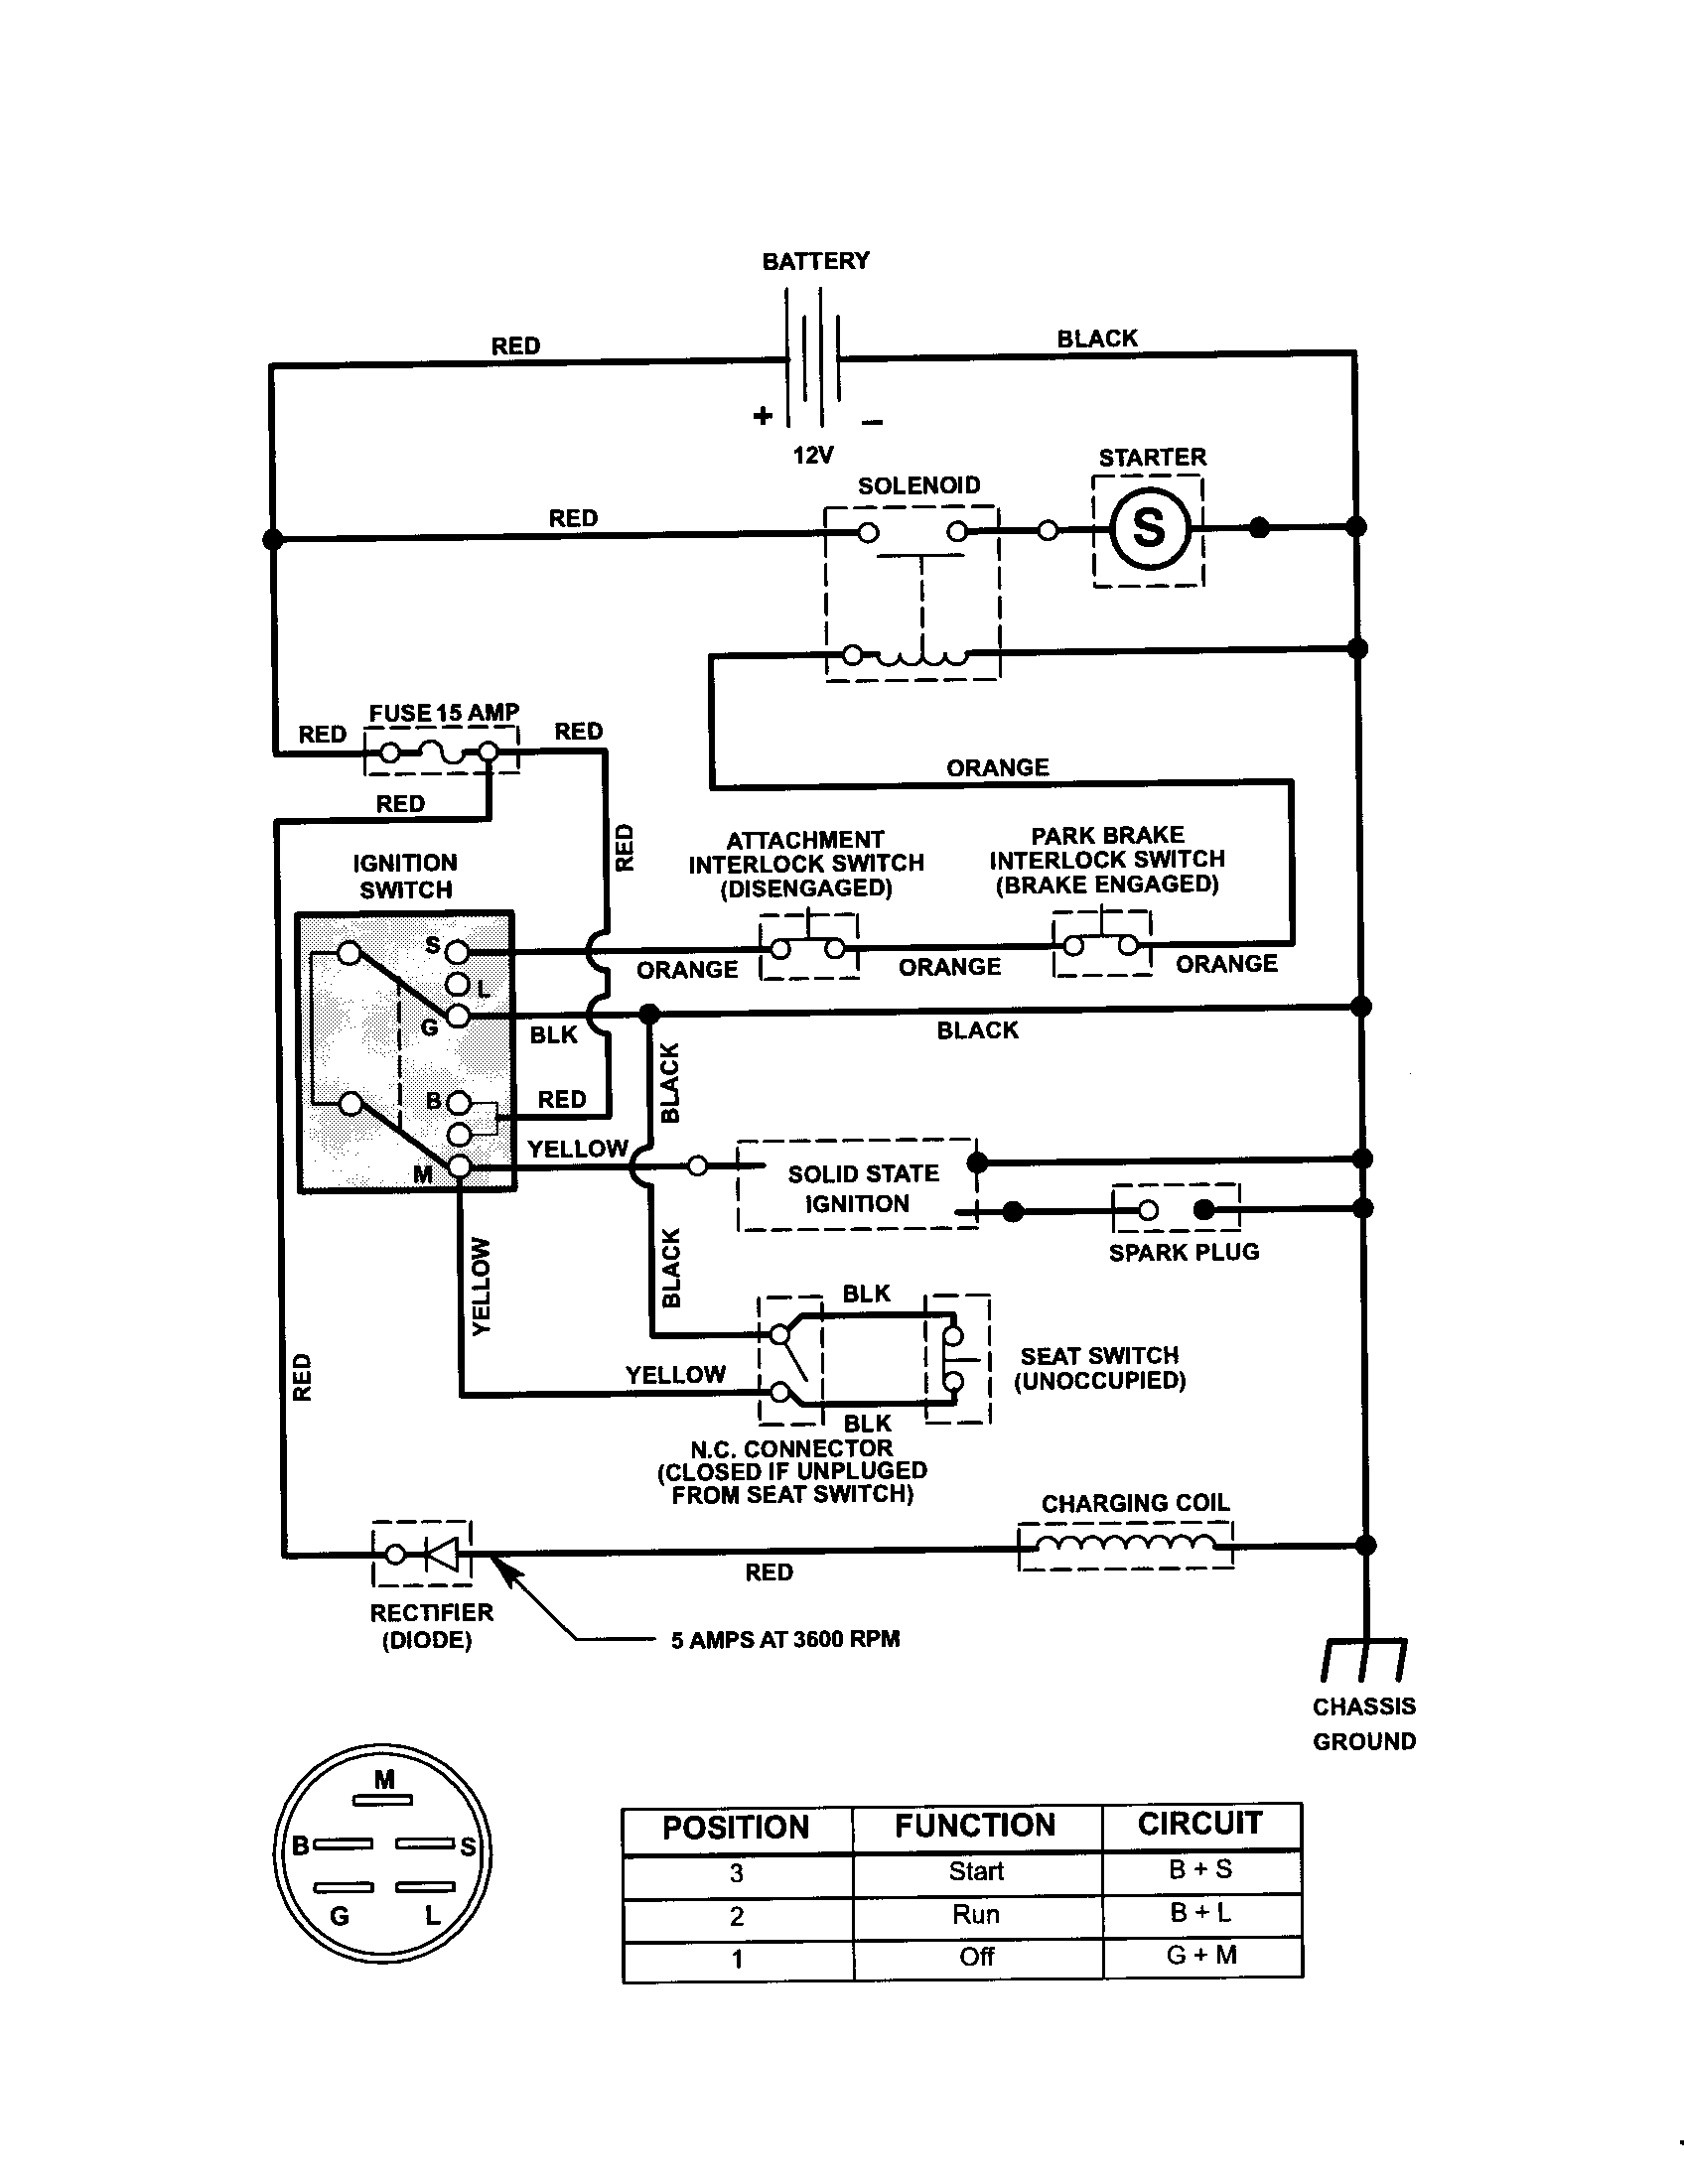 1b4fc64e2bcb7b381848942ff5c84dce craftsman riding mower electrical diagram pictures of craftsman john deere riding mower wiring diagram at mifinder.co